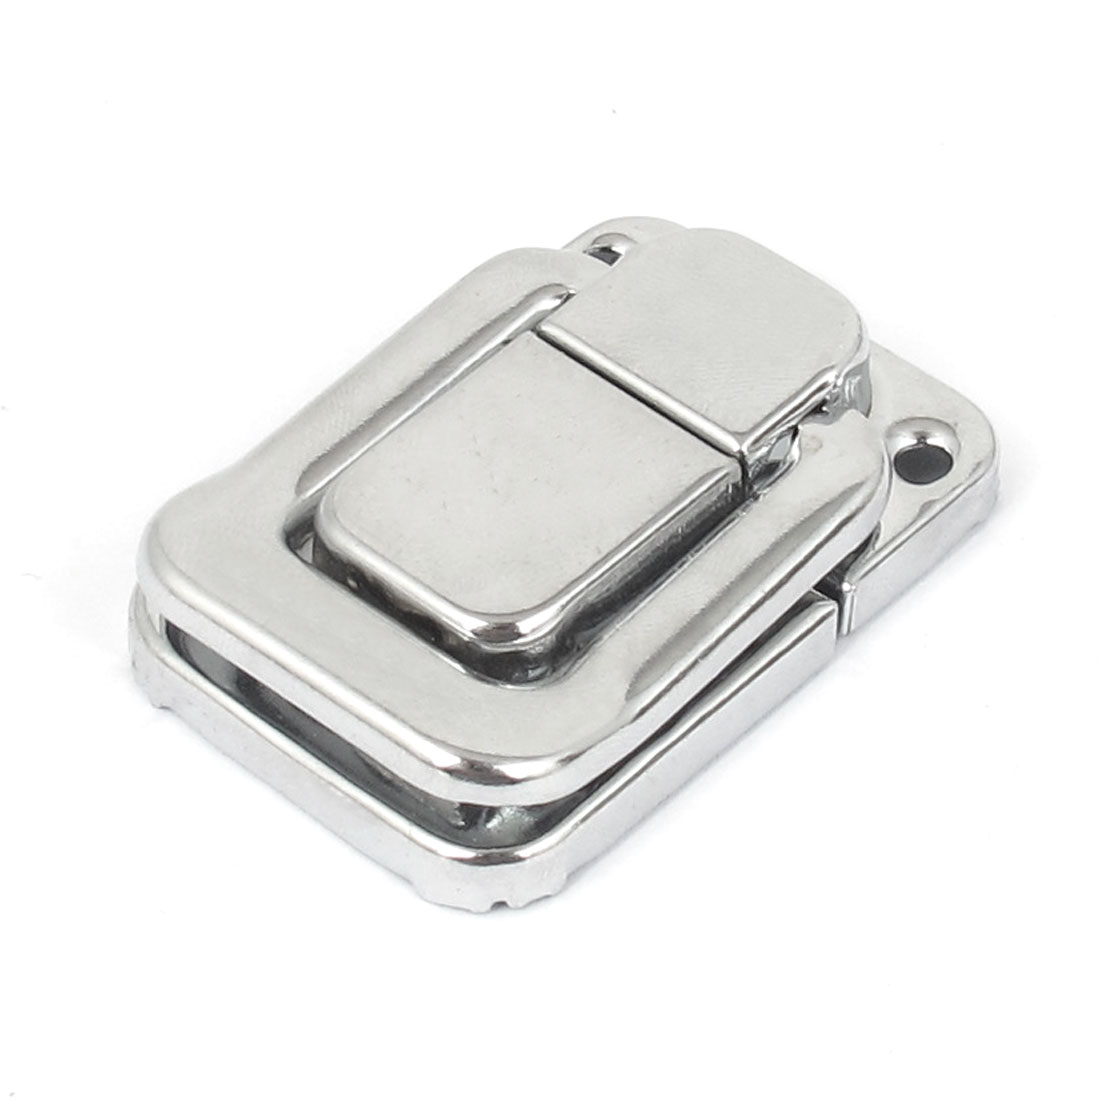 Suitcase Case Box Chest Trunk Metal Toggle Catch Latch Clasp Silver Tone 48mmx32mm